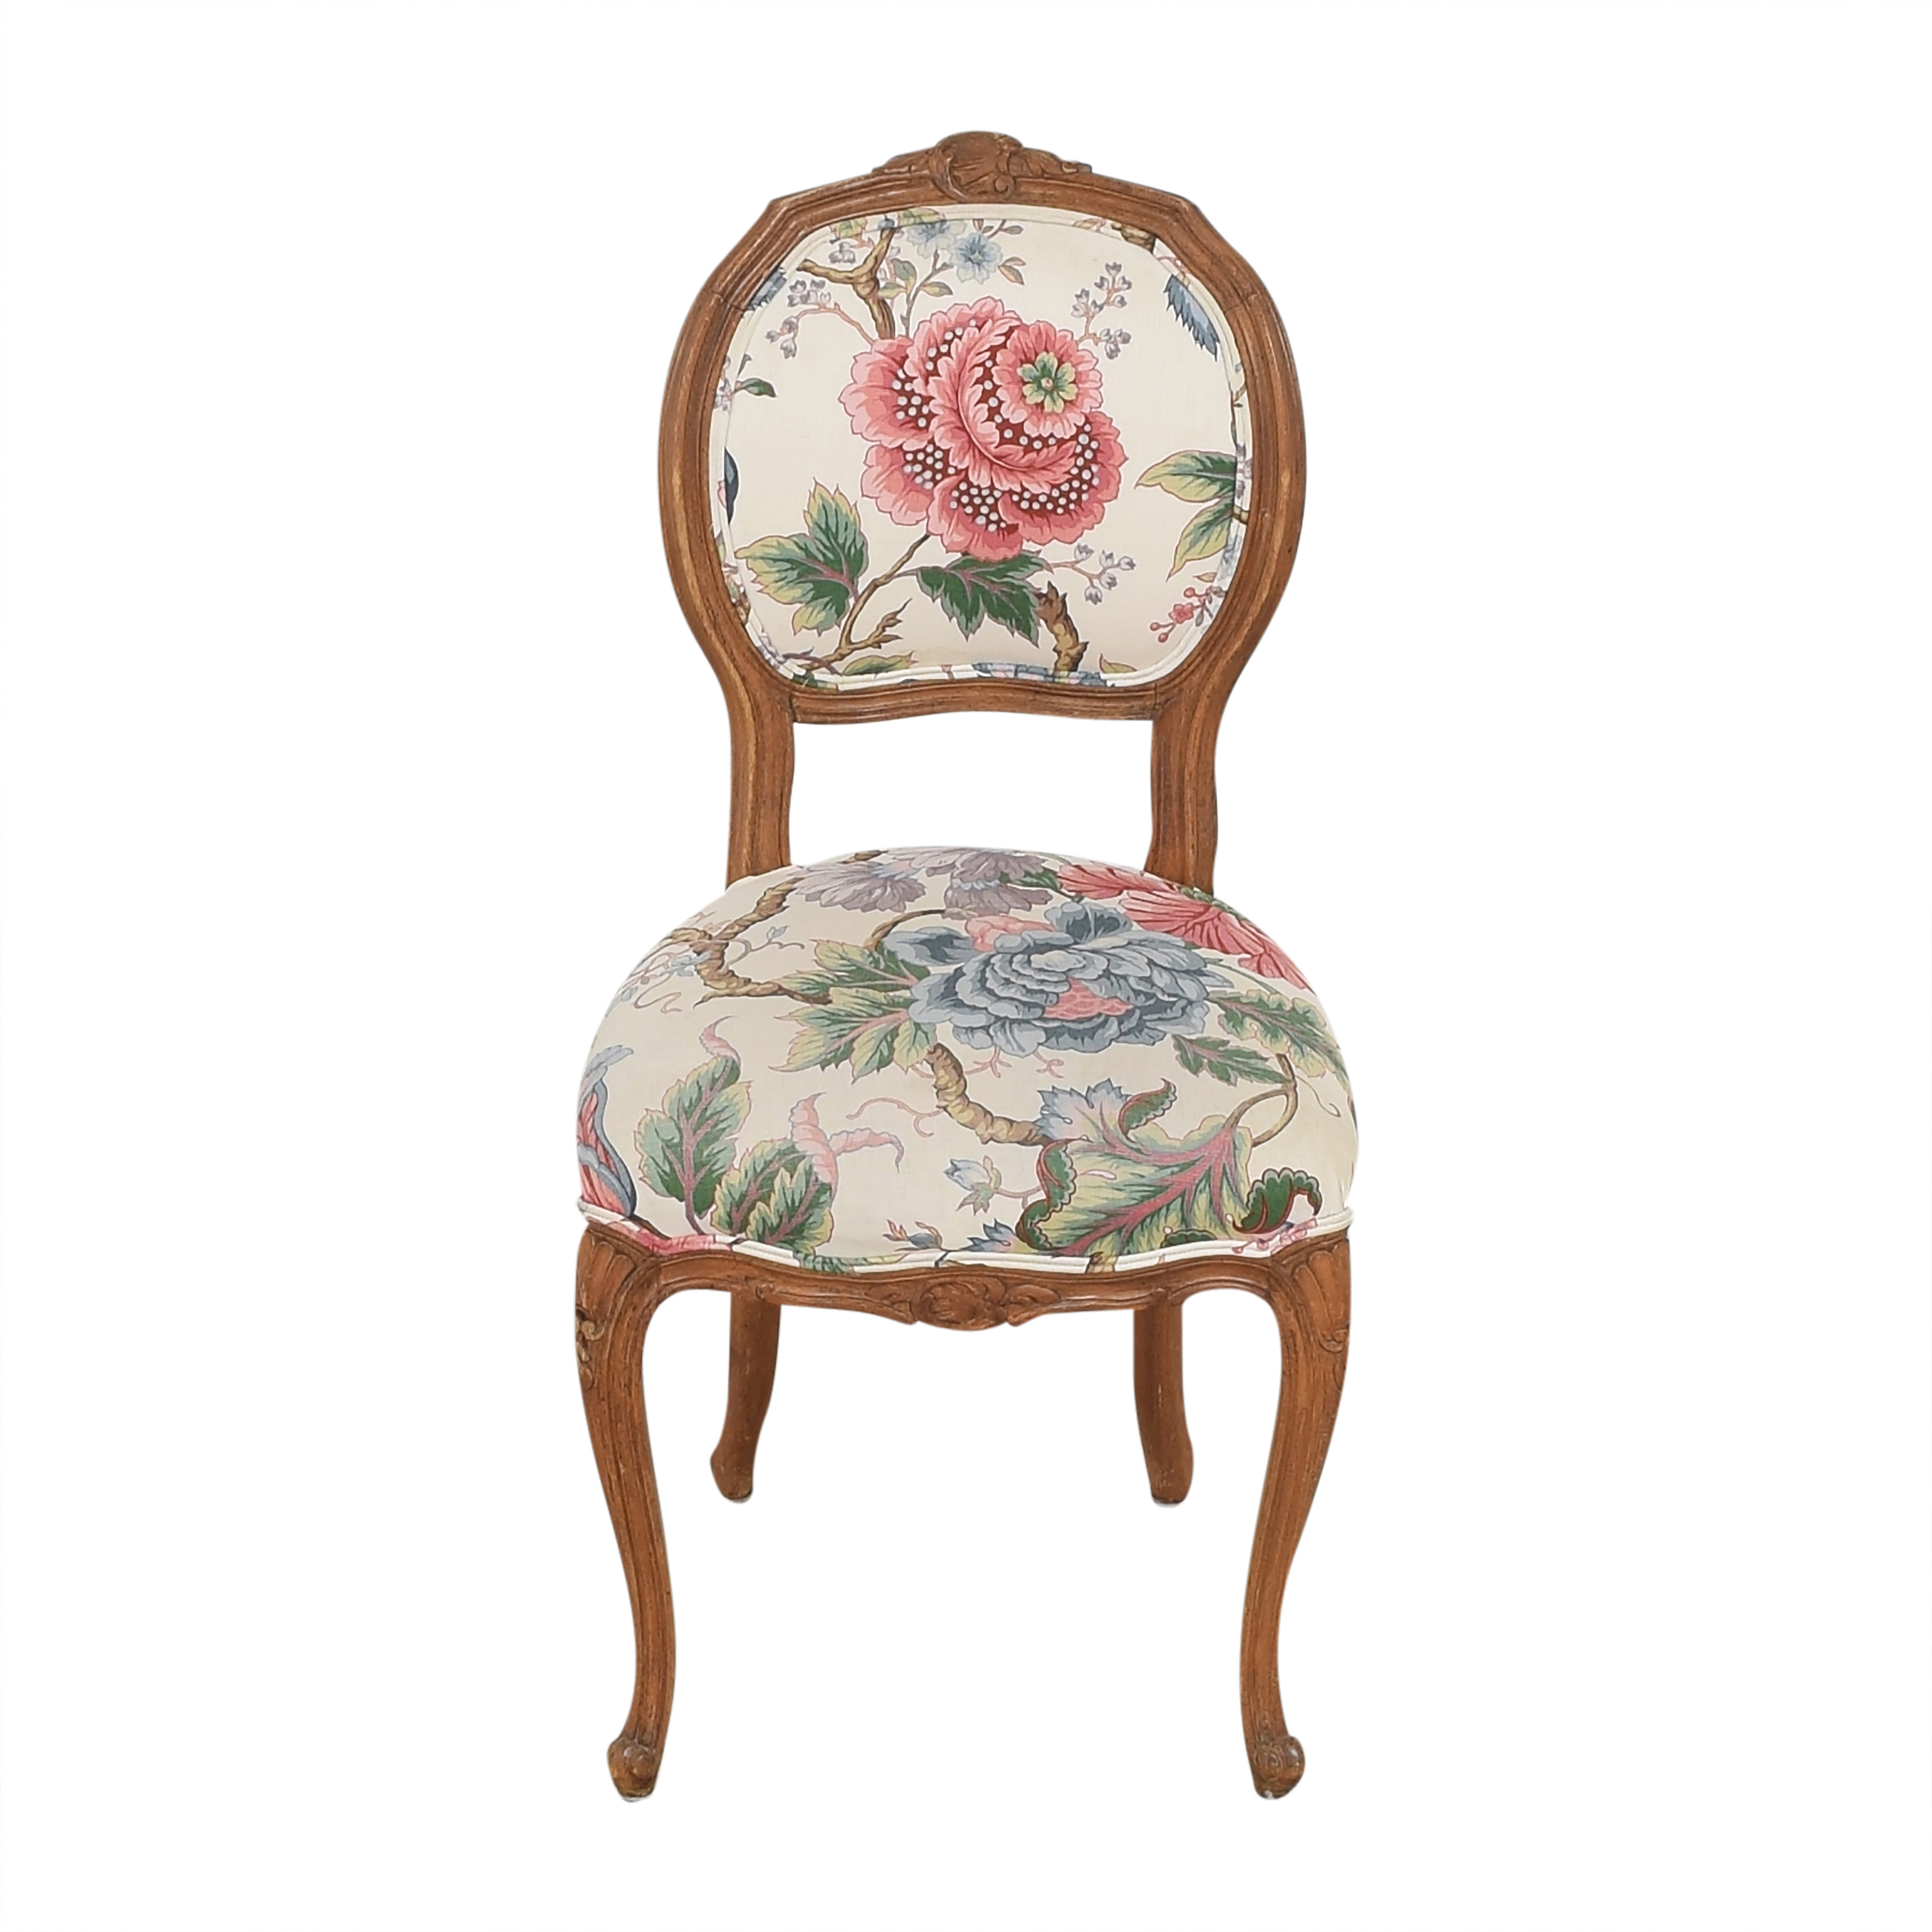 shop Floral Vintage-Style Upholstered Chair